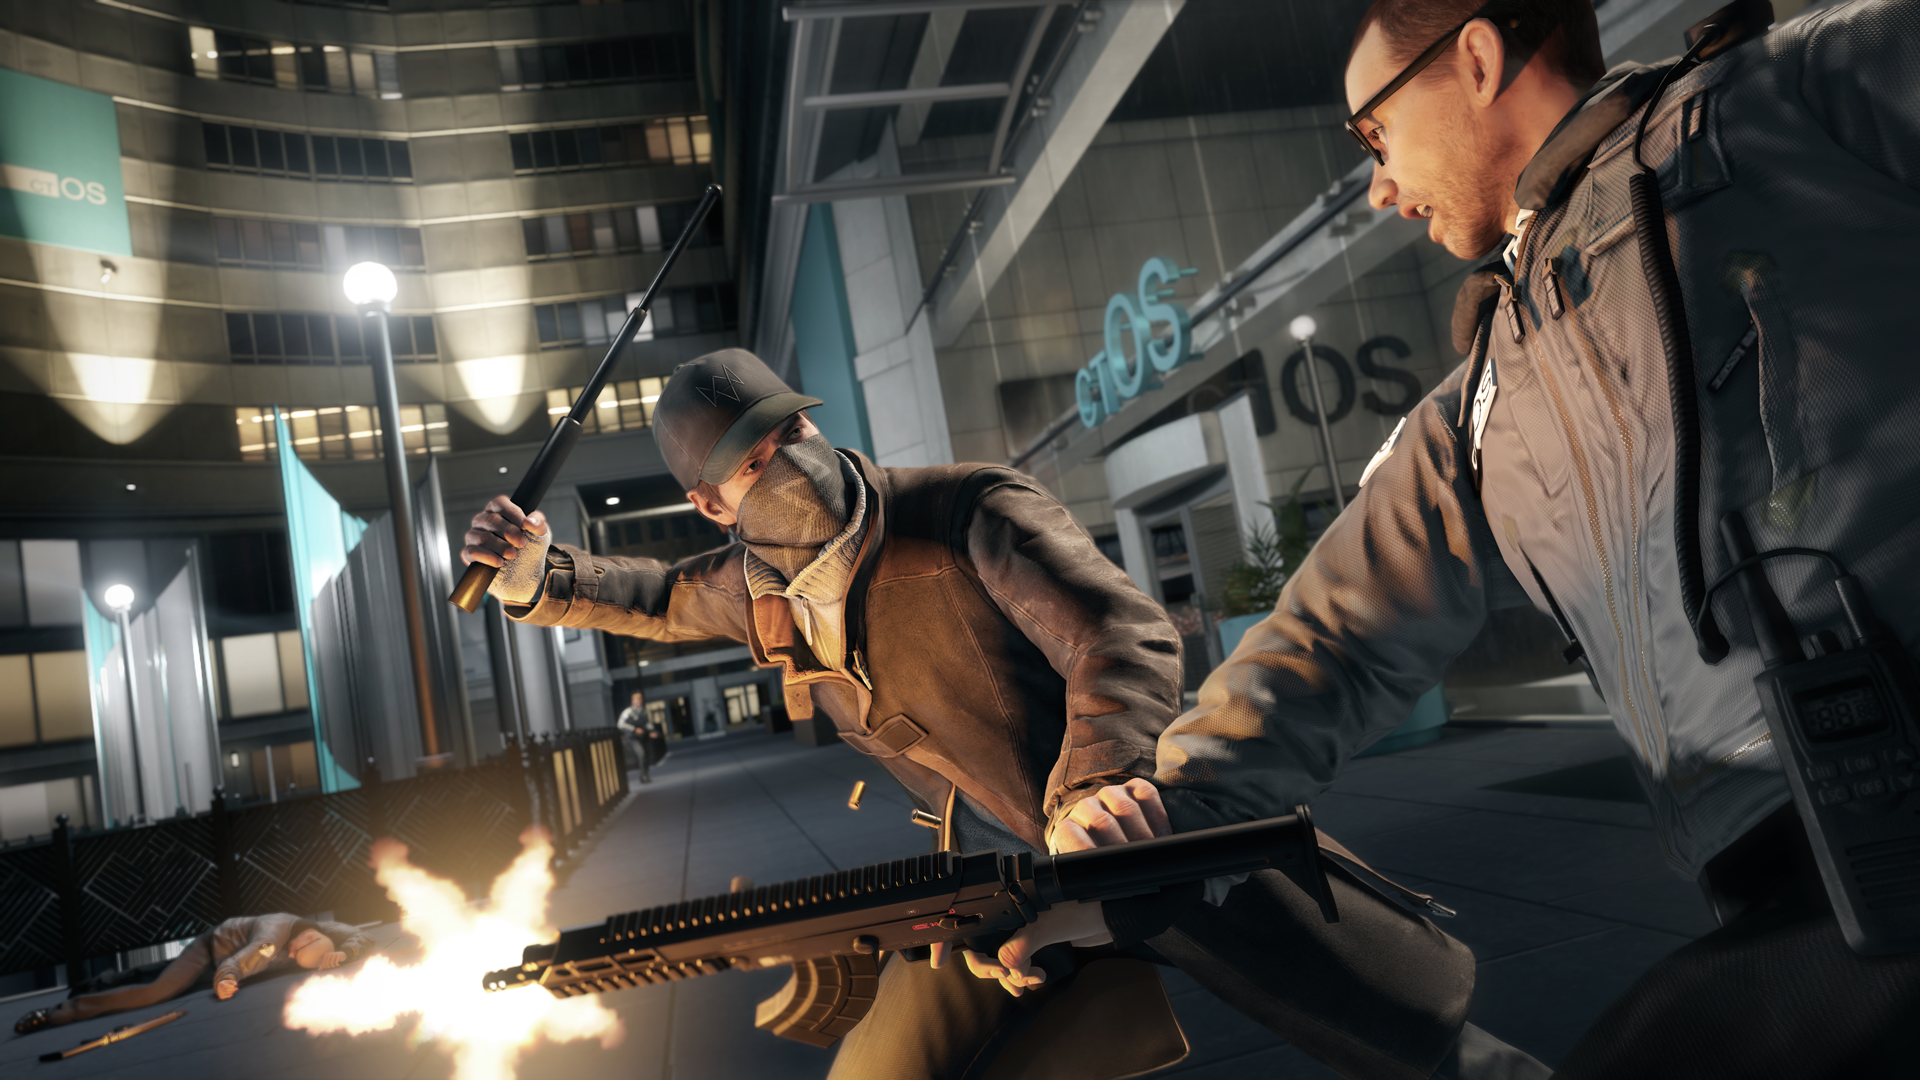 Watch Dogs promotion triggers bomb squad response to major publication